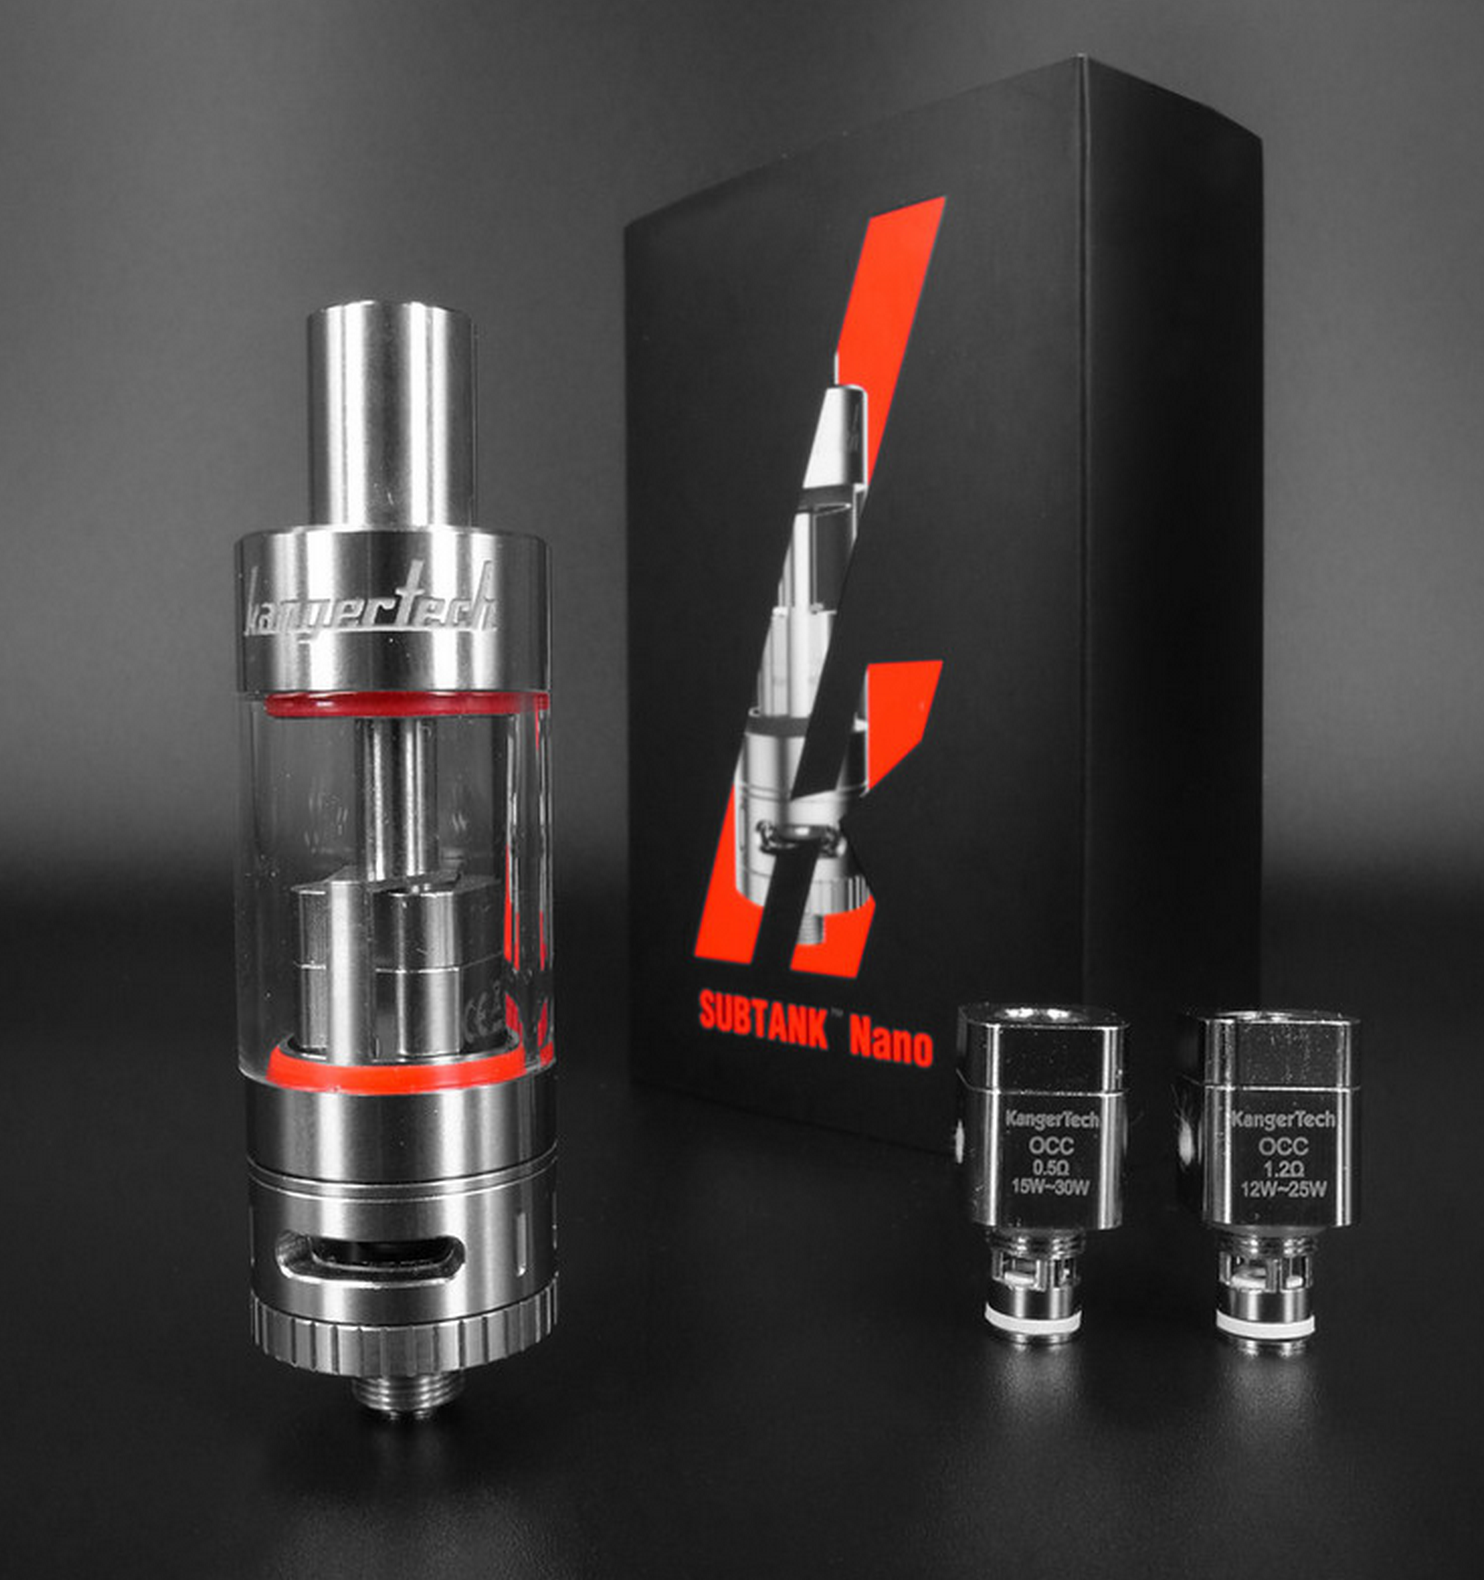 Kanger SubTank Nano Review: Small But Insanely POWERFUL